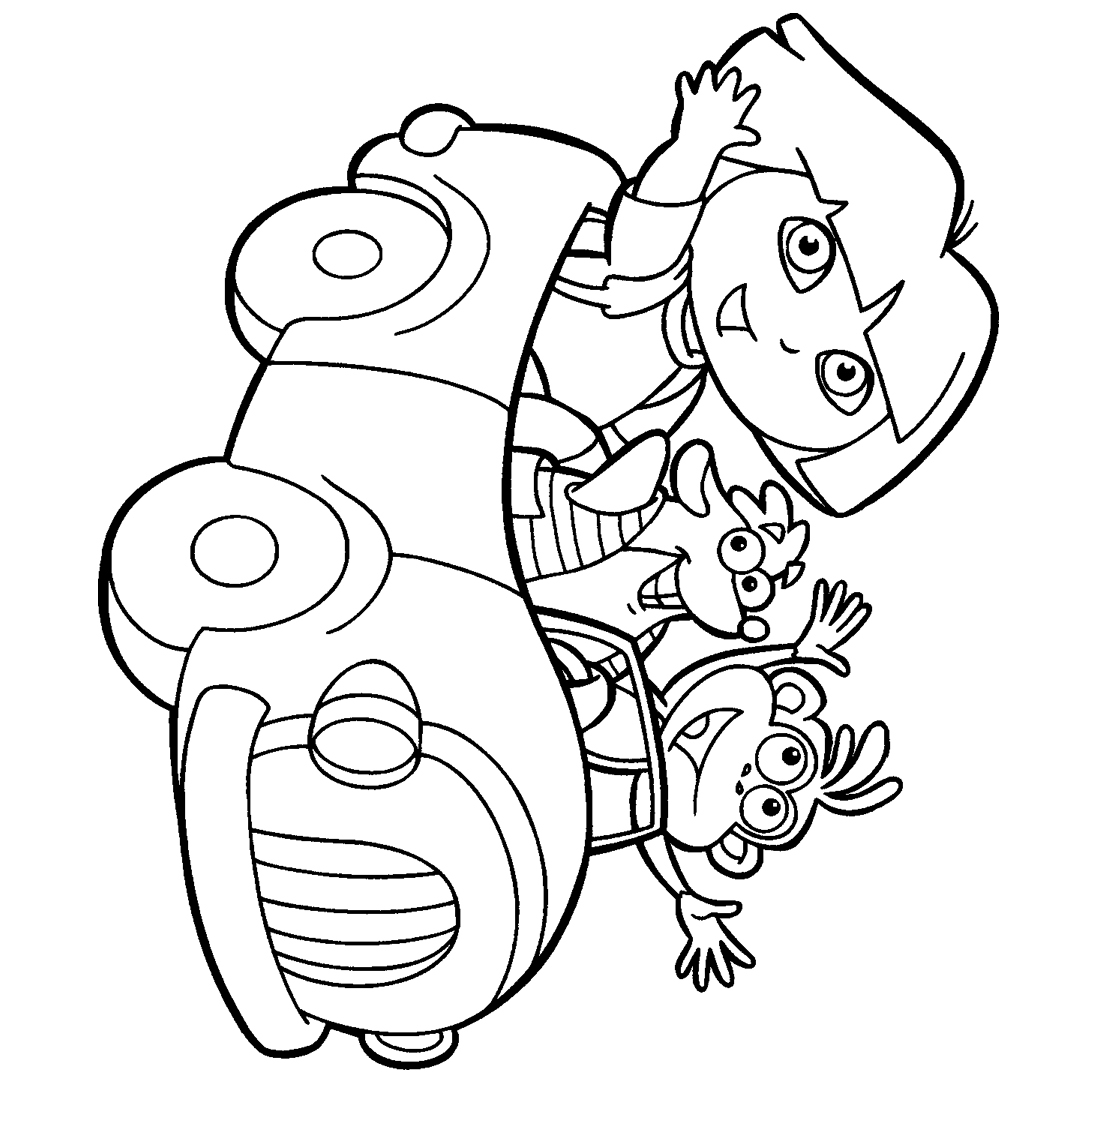 1099x1139 Impressive Kid Coloring Pages Cool And Best Id